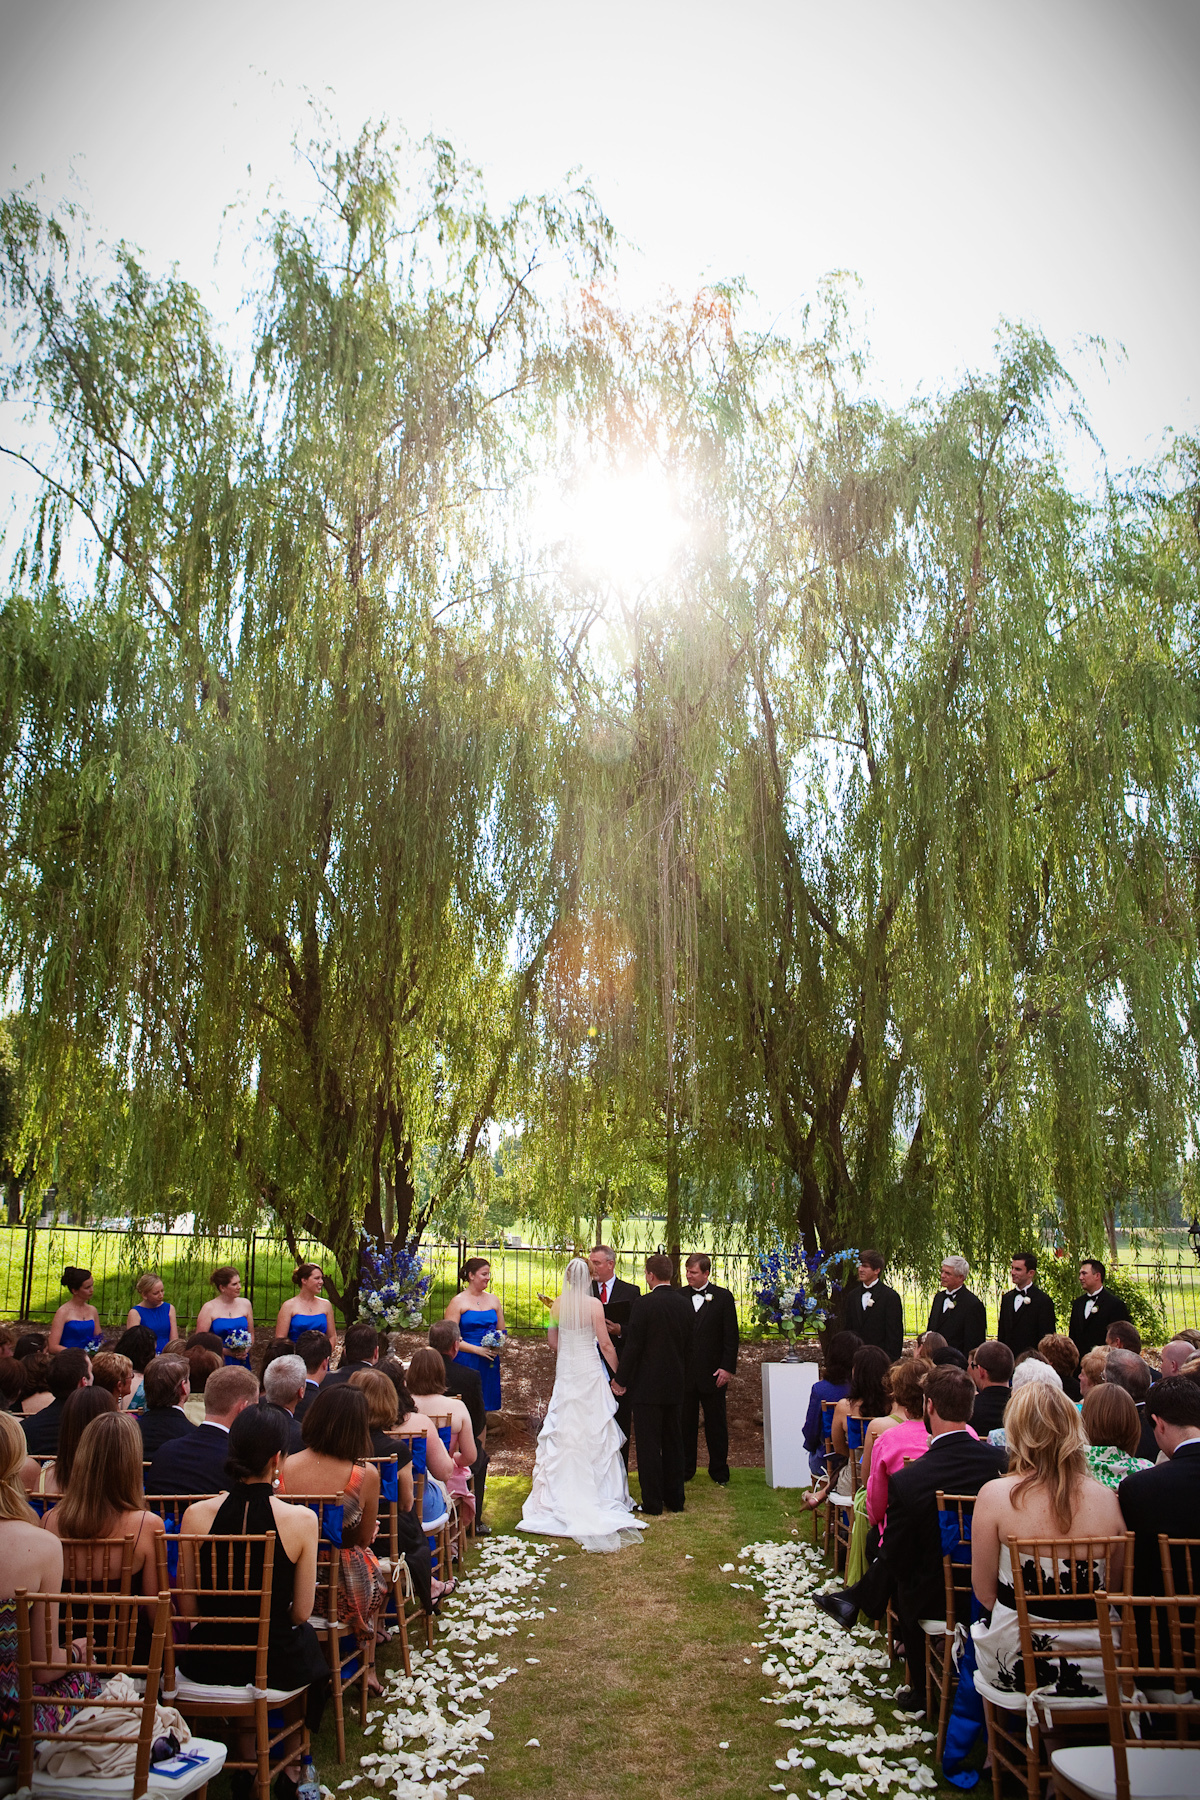 Ceremony, Flowers & Decor, Park, Outside